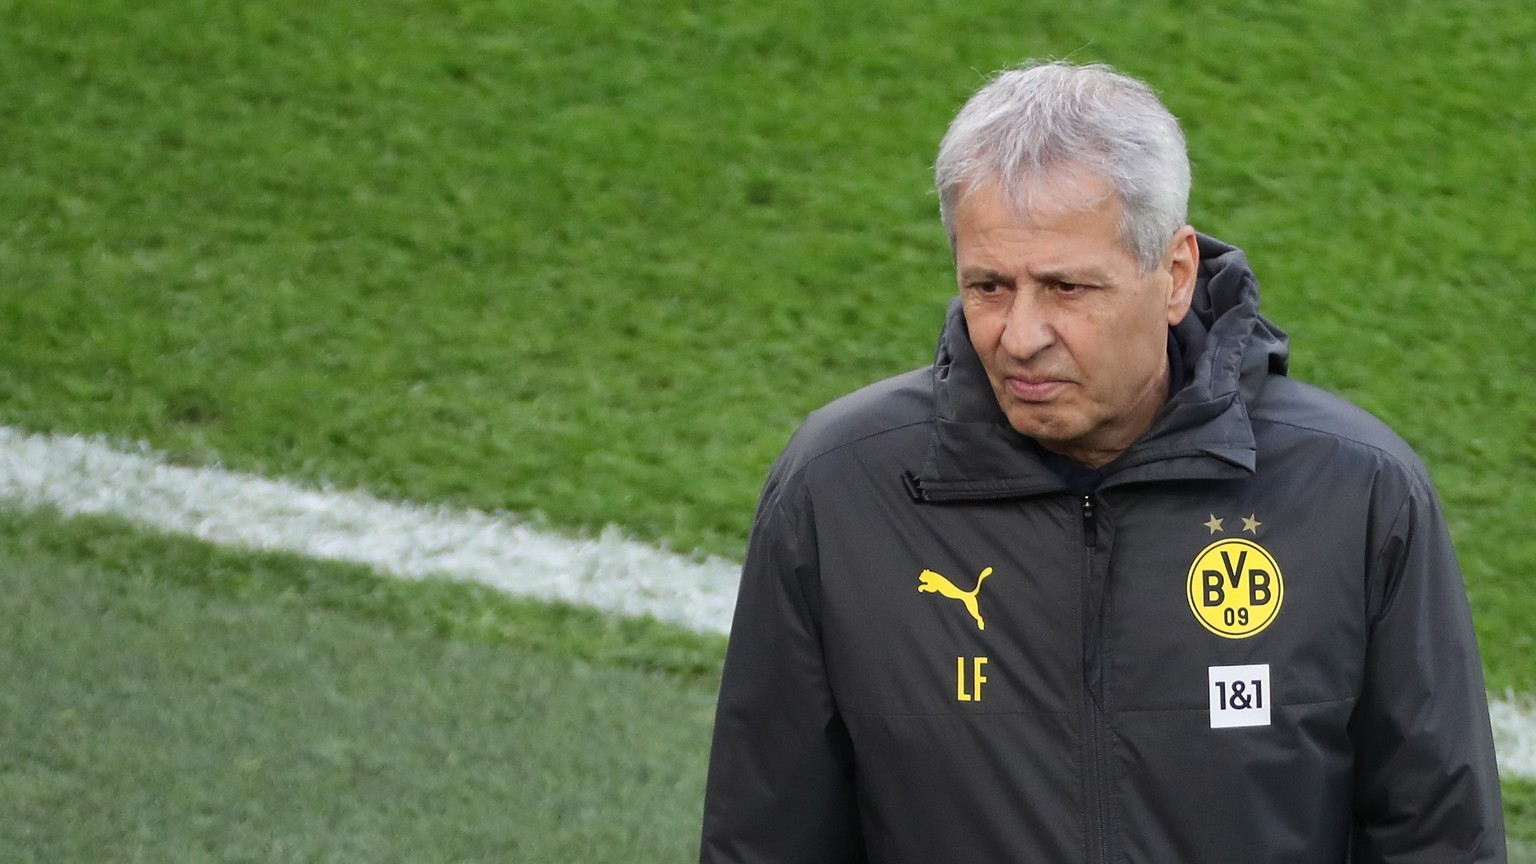 epa08879109 Dortmund's head coach Lucien Favre before the German Bundesliga soccer match between Borussia Dortmund and VfB Stuttgart in Dortmund, Germany, 12 December 2020.  EPA/FOCKE STRANGMANN / POOL CONDITIONS - ATTENTION: The DFL regulations prohibit any use of photographs as image sequences and/or quasi-video.